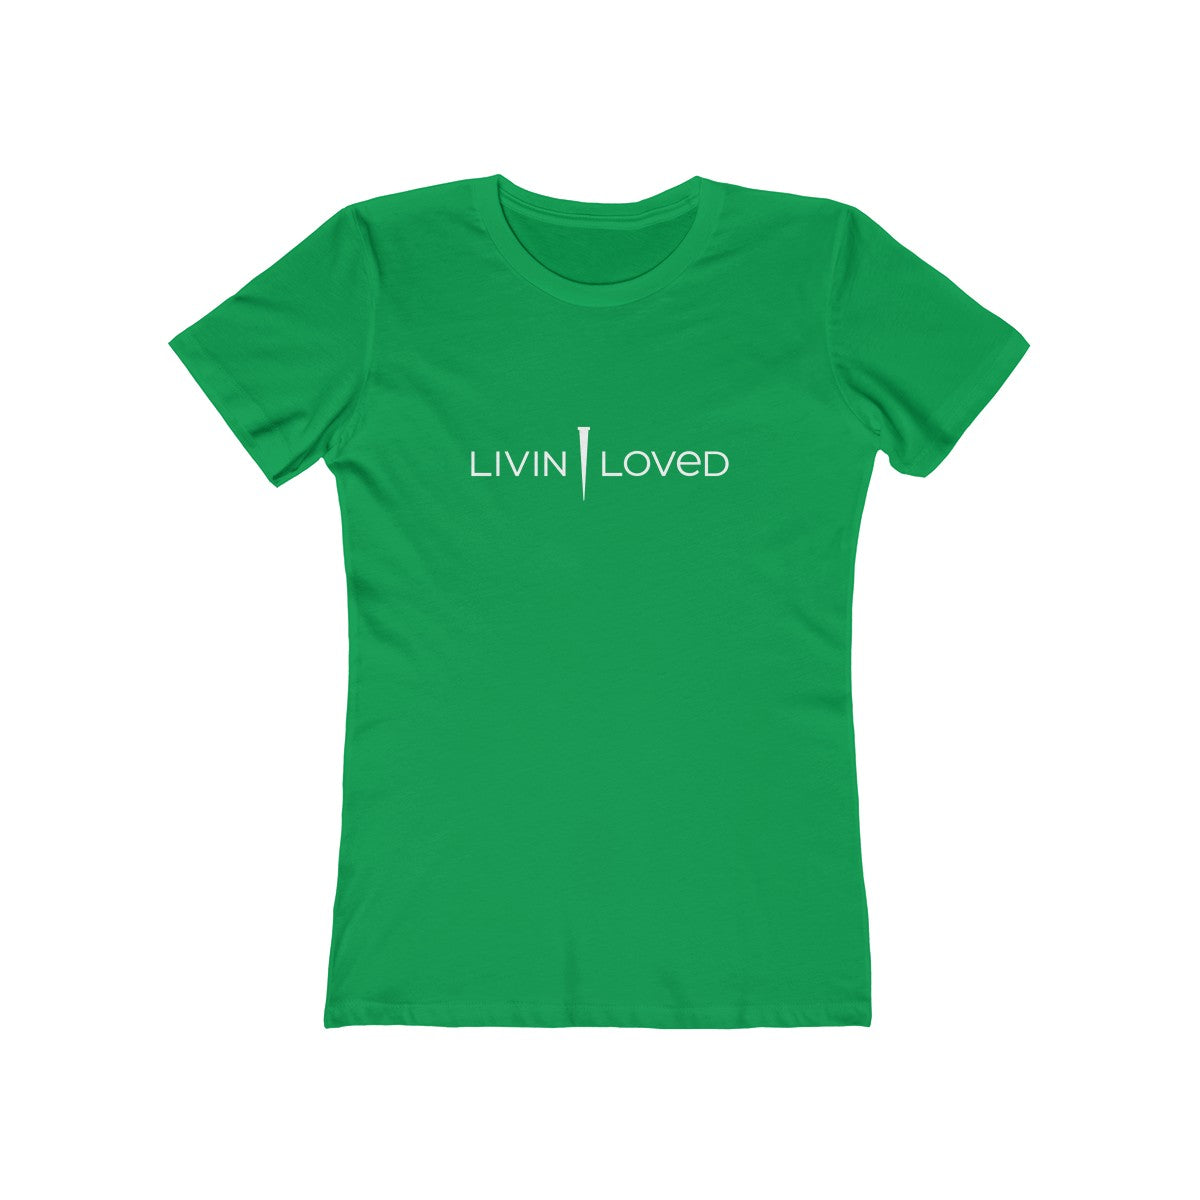 Livin Loved Women's The Boyfriend Tee - DARK COLORS